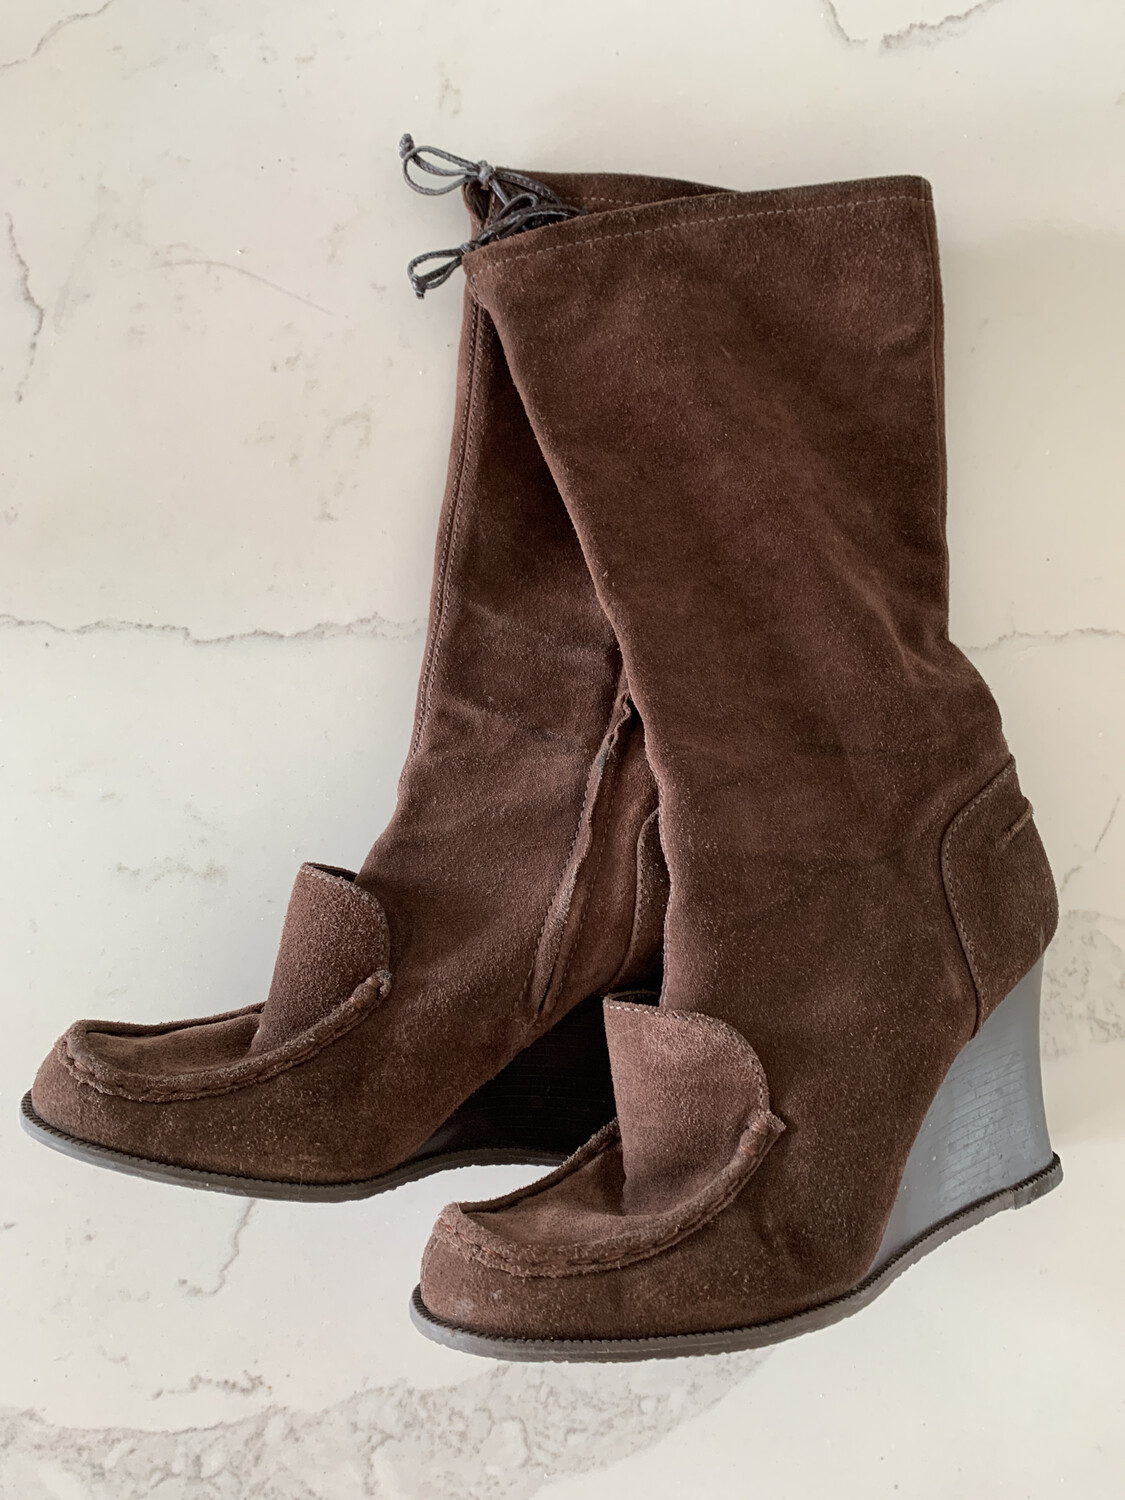 BCBGirls Brown Tall Suede Boots - Size 9.5